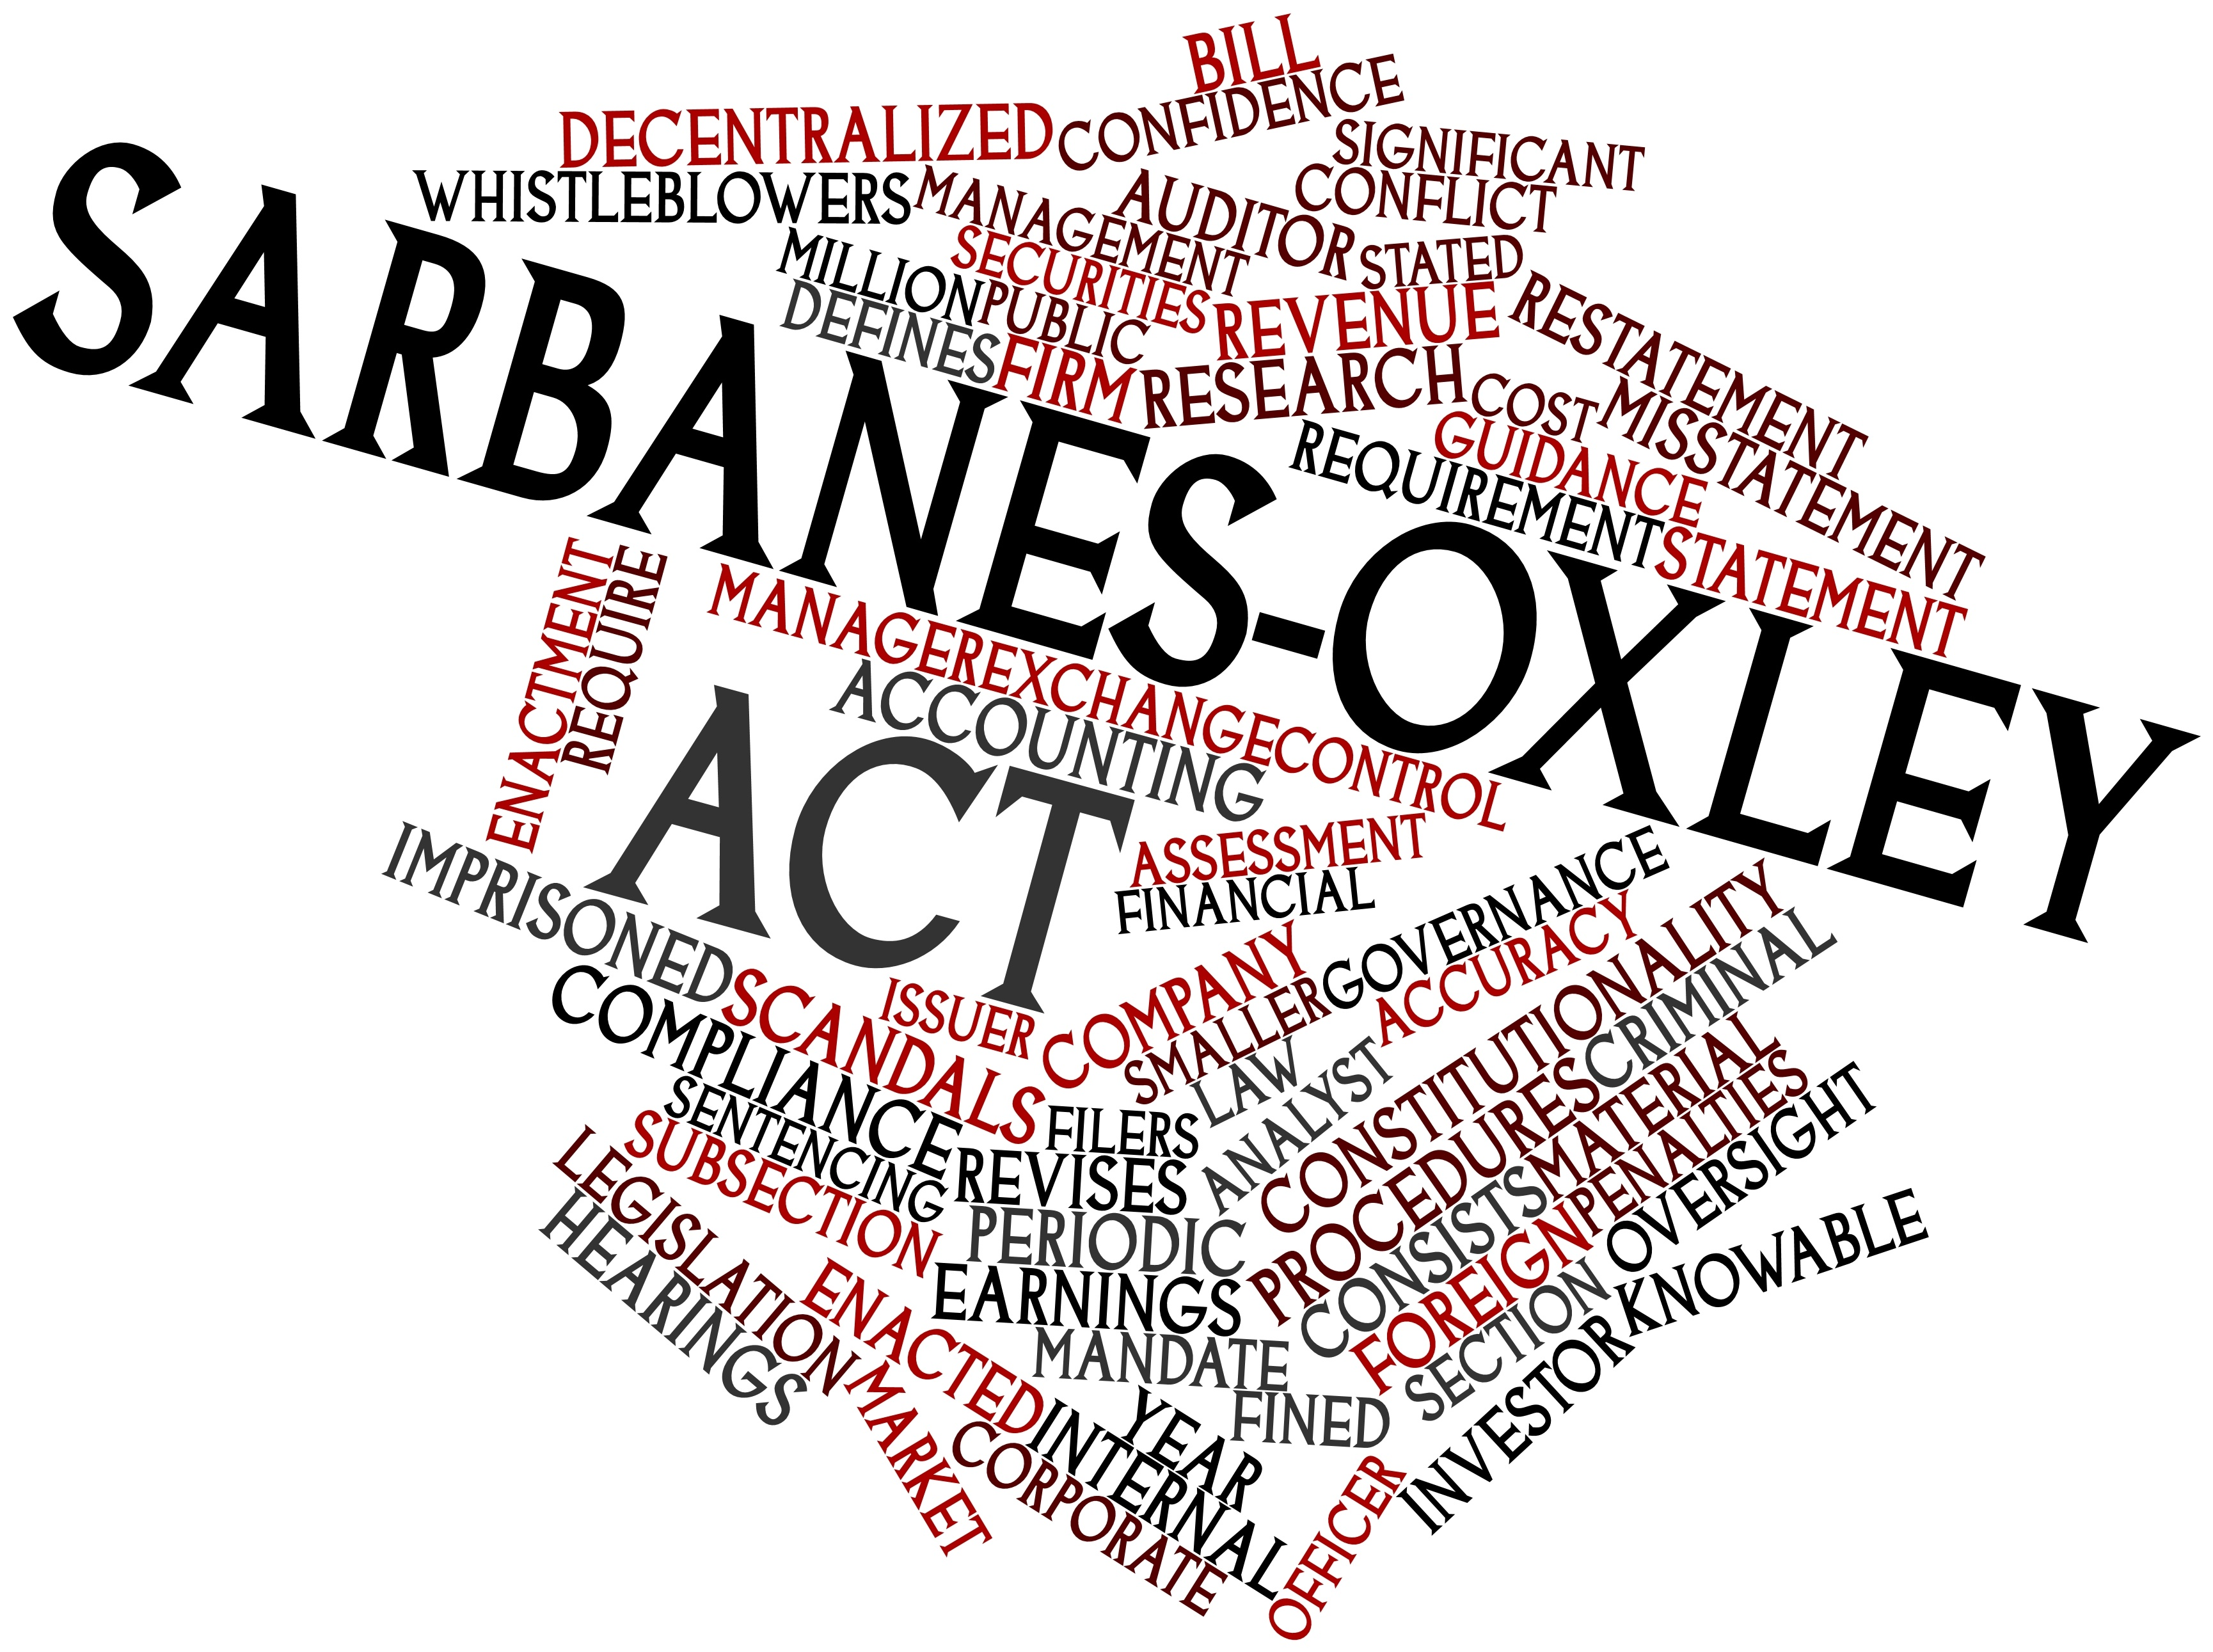 Literature review on sarbanes oxley act